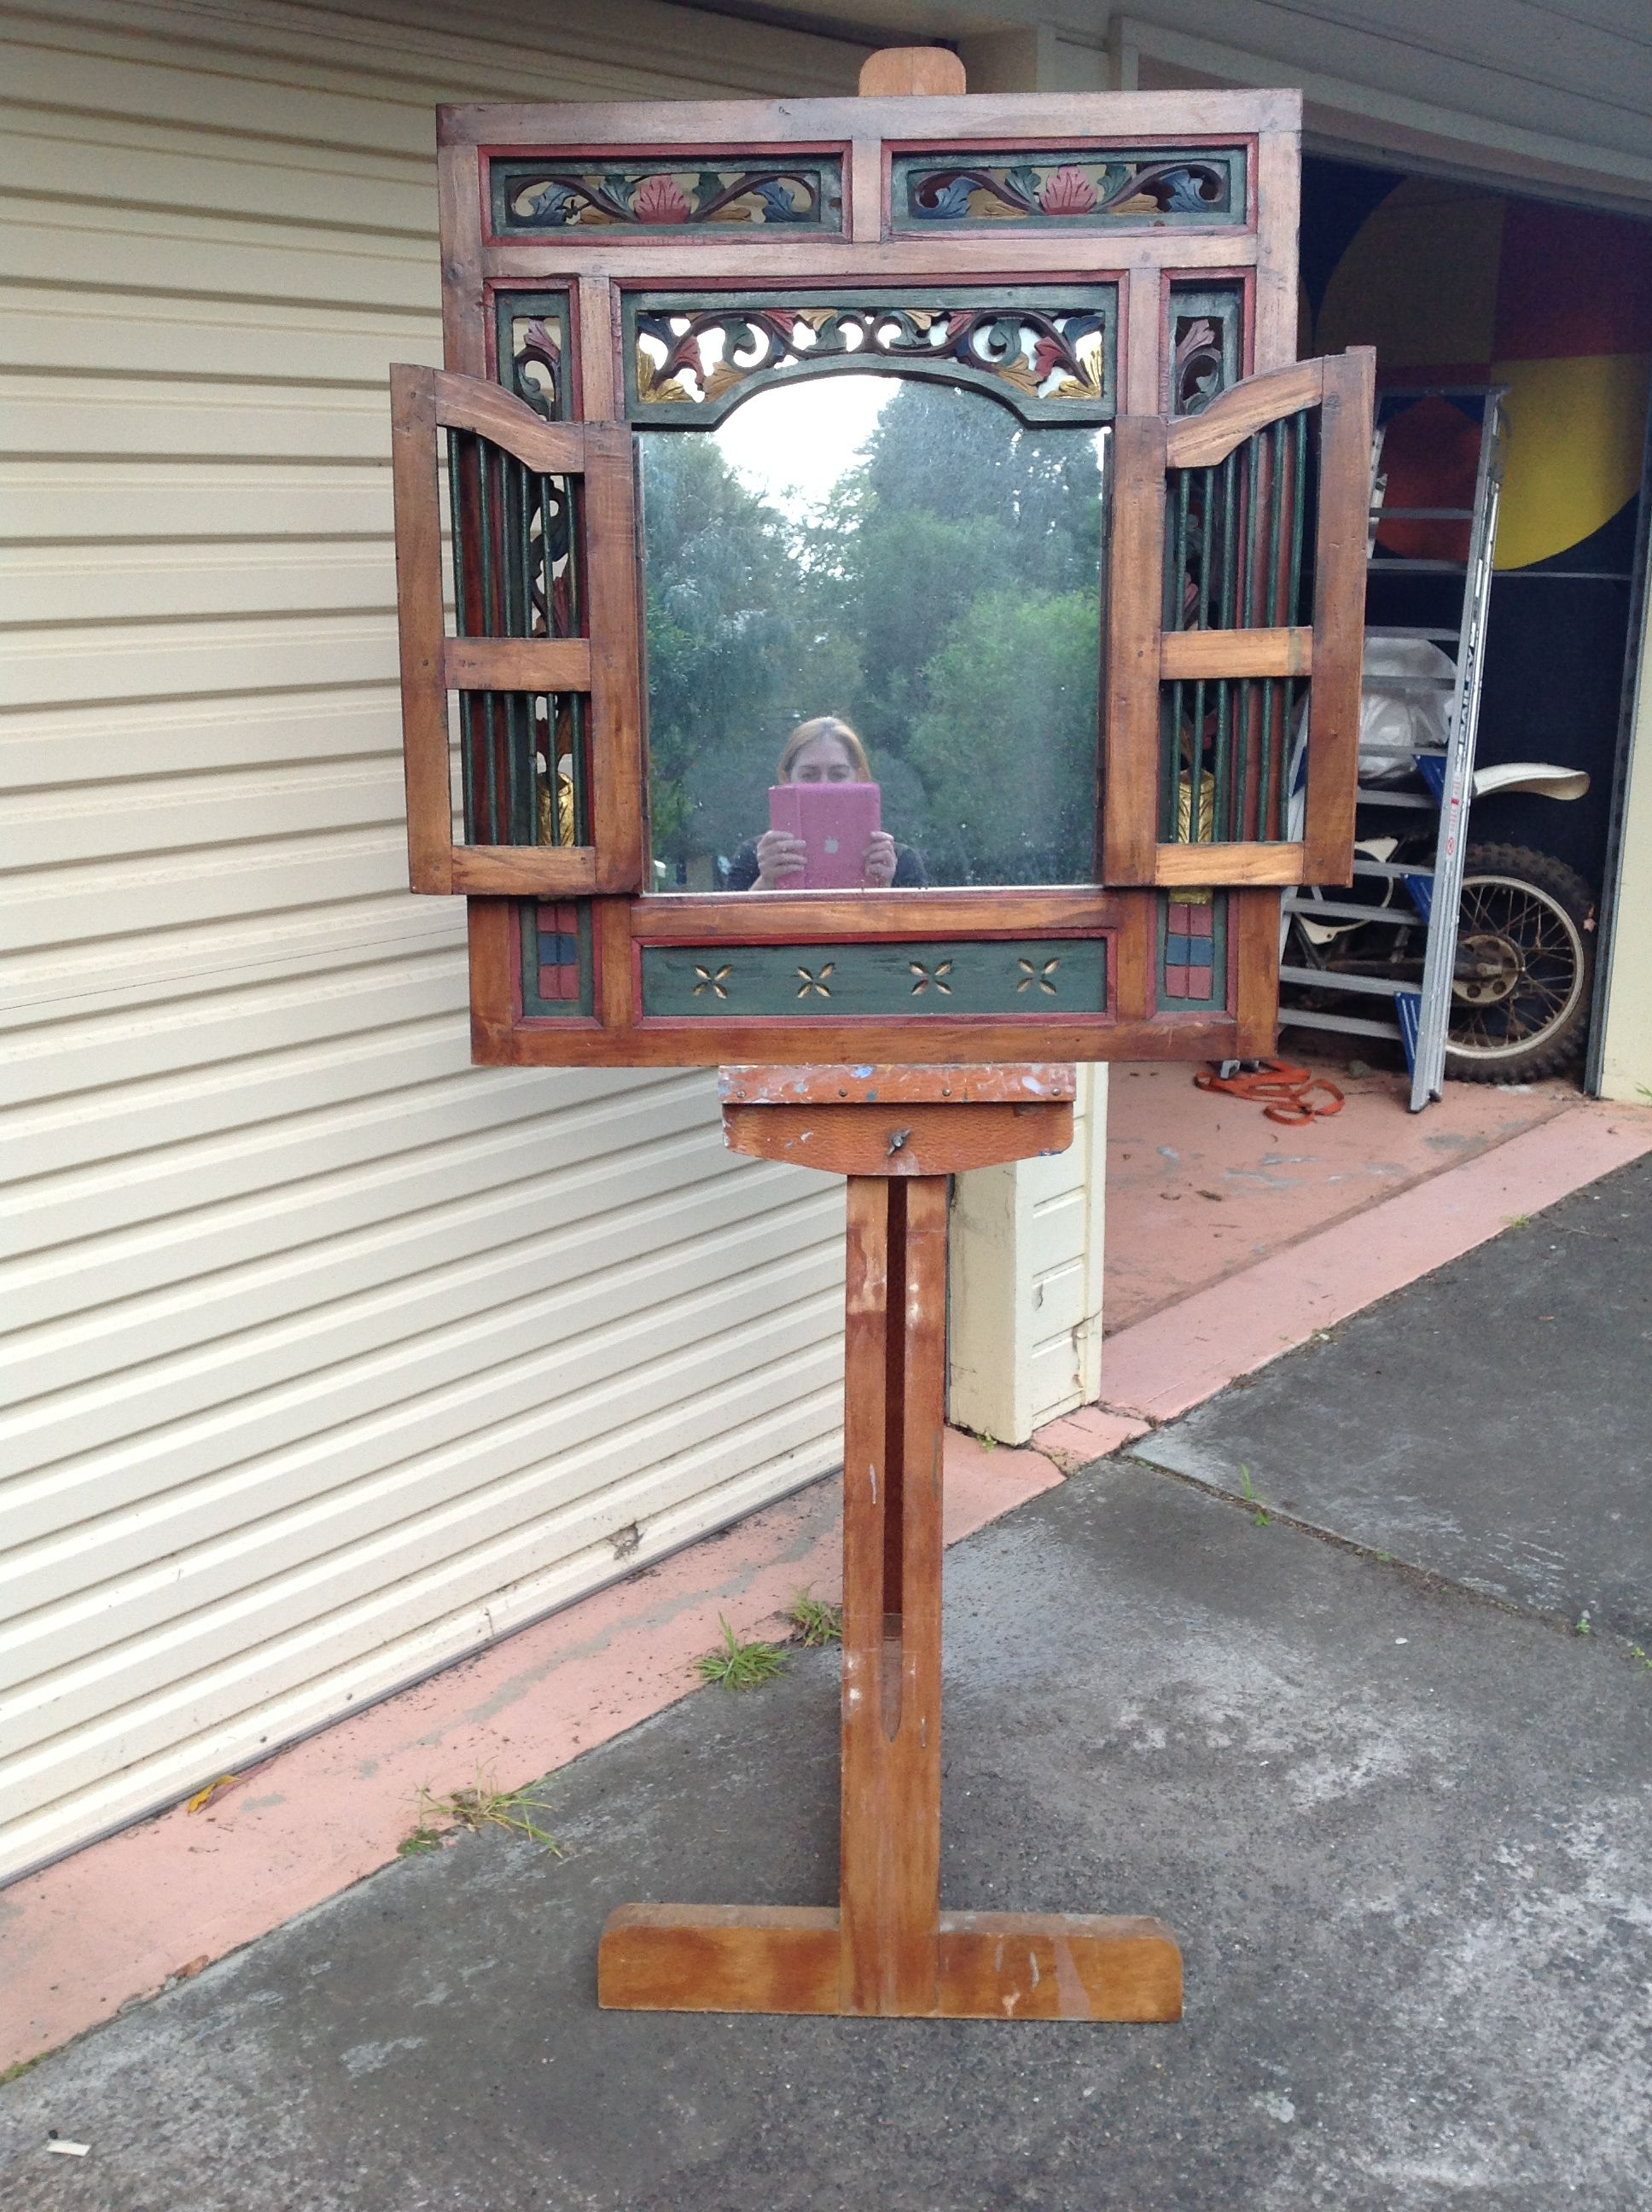 Pin by Jacob Asher on easel ideas | Outdoor decor, Decor ... on Easel Decorating Ideas  id=59263